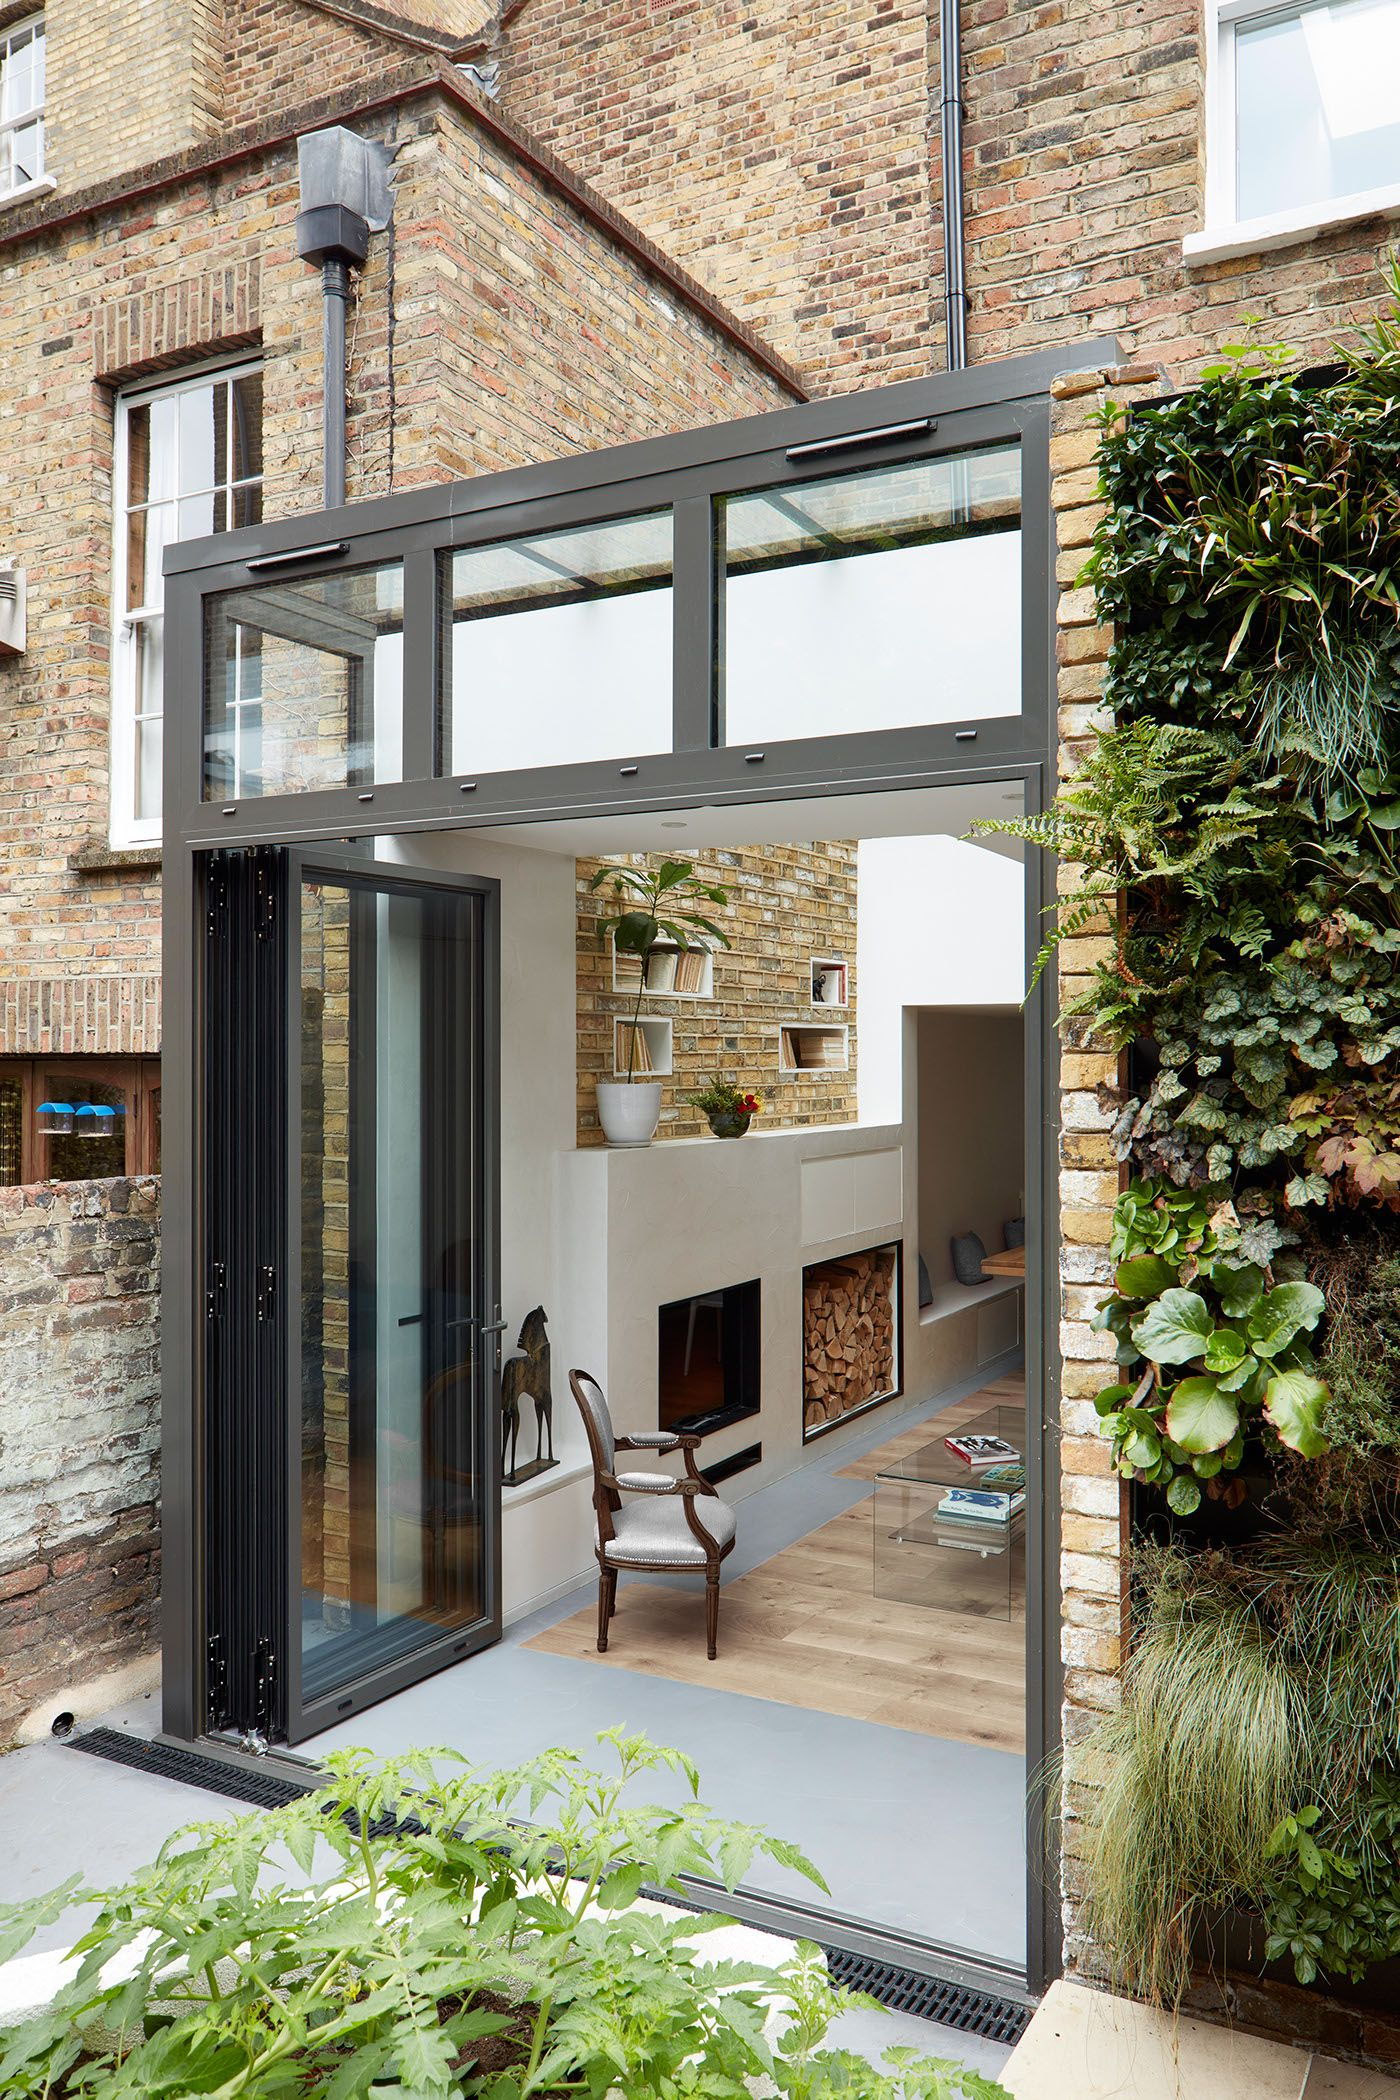 Islington Home on Behance (With images) | Georgian homes ...